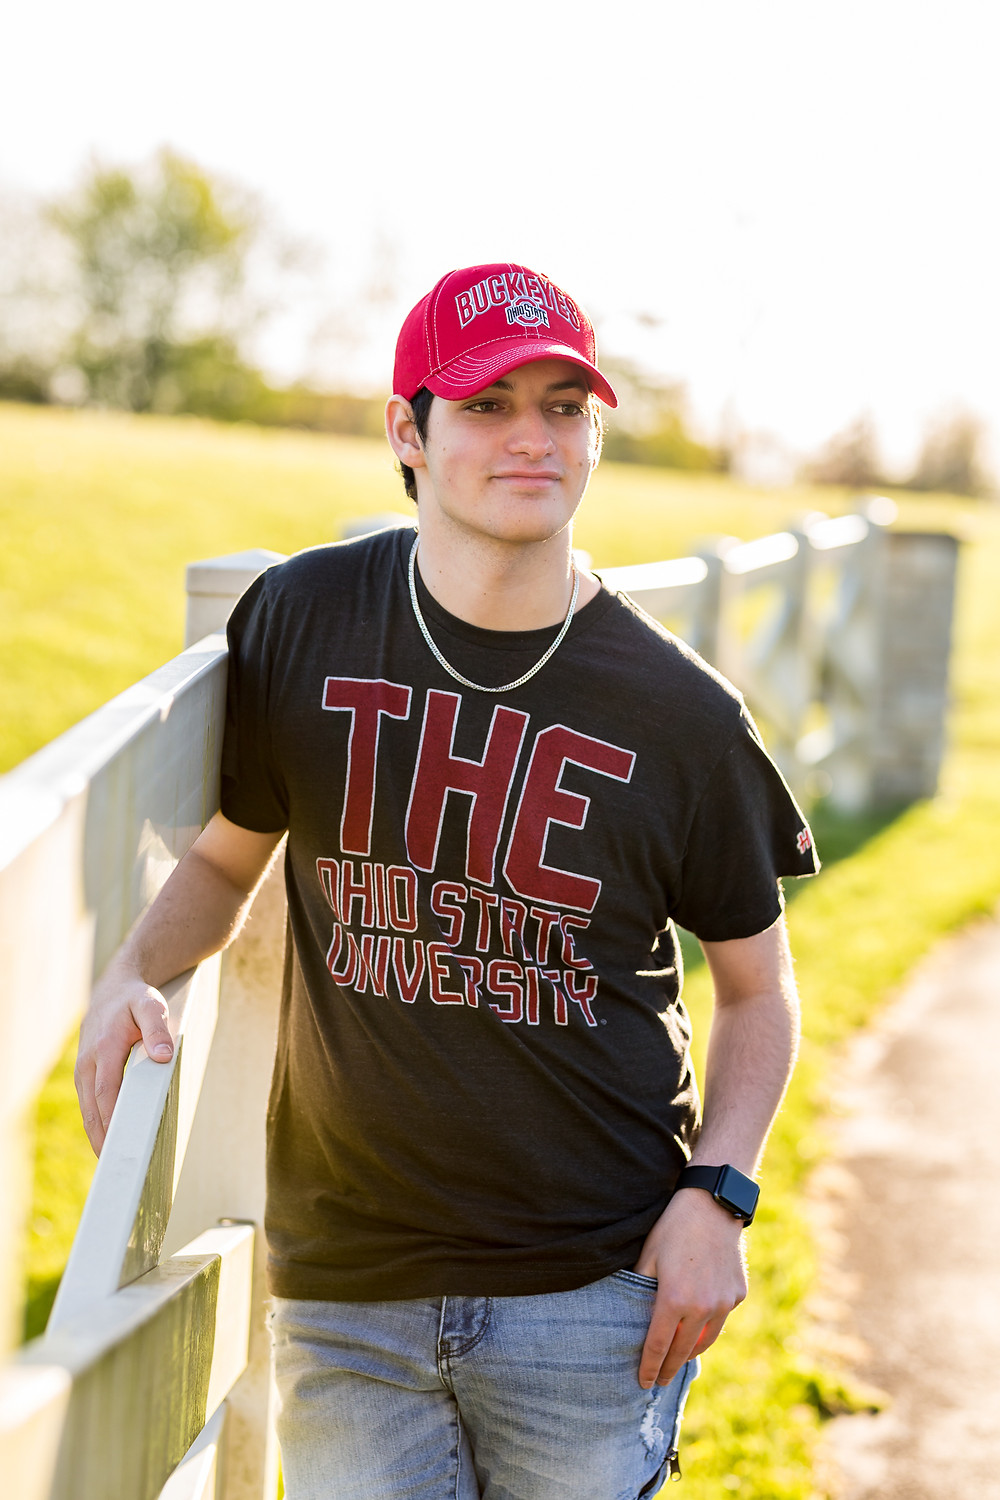 Senior guy in Westerville, Ohio wearing a Ohio State University T-shirt and hat for his Summer senior session holding onto a fence and looking away